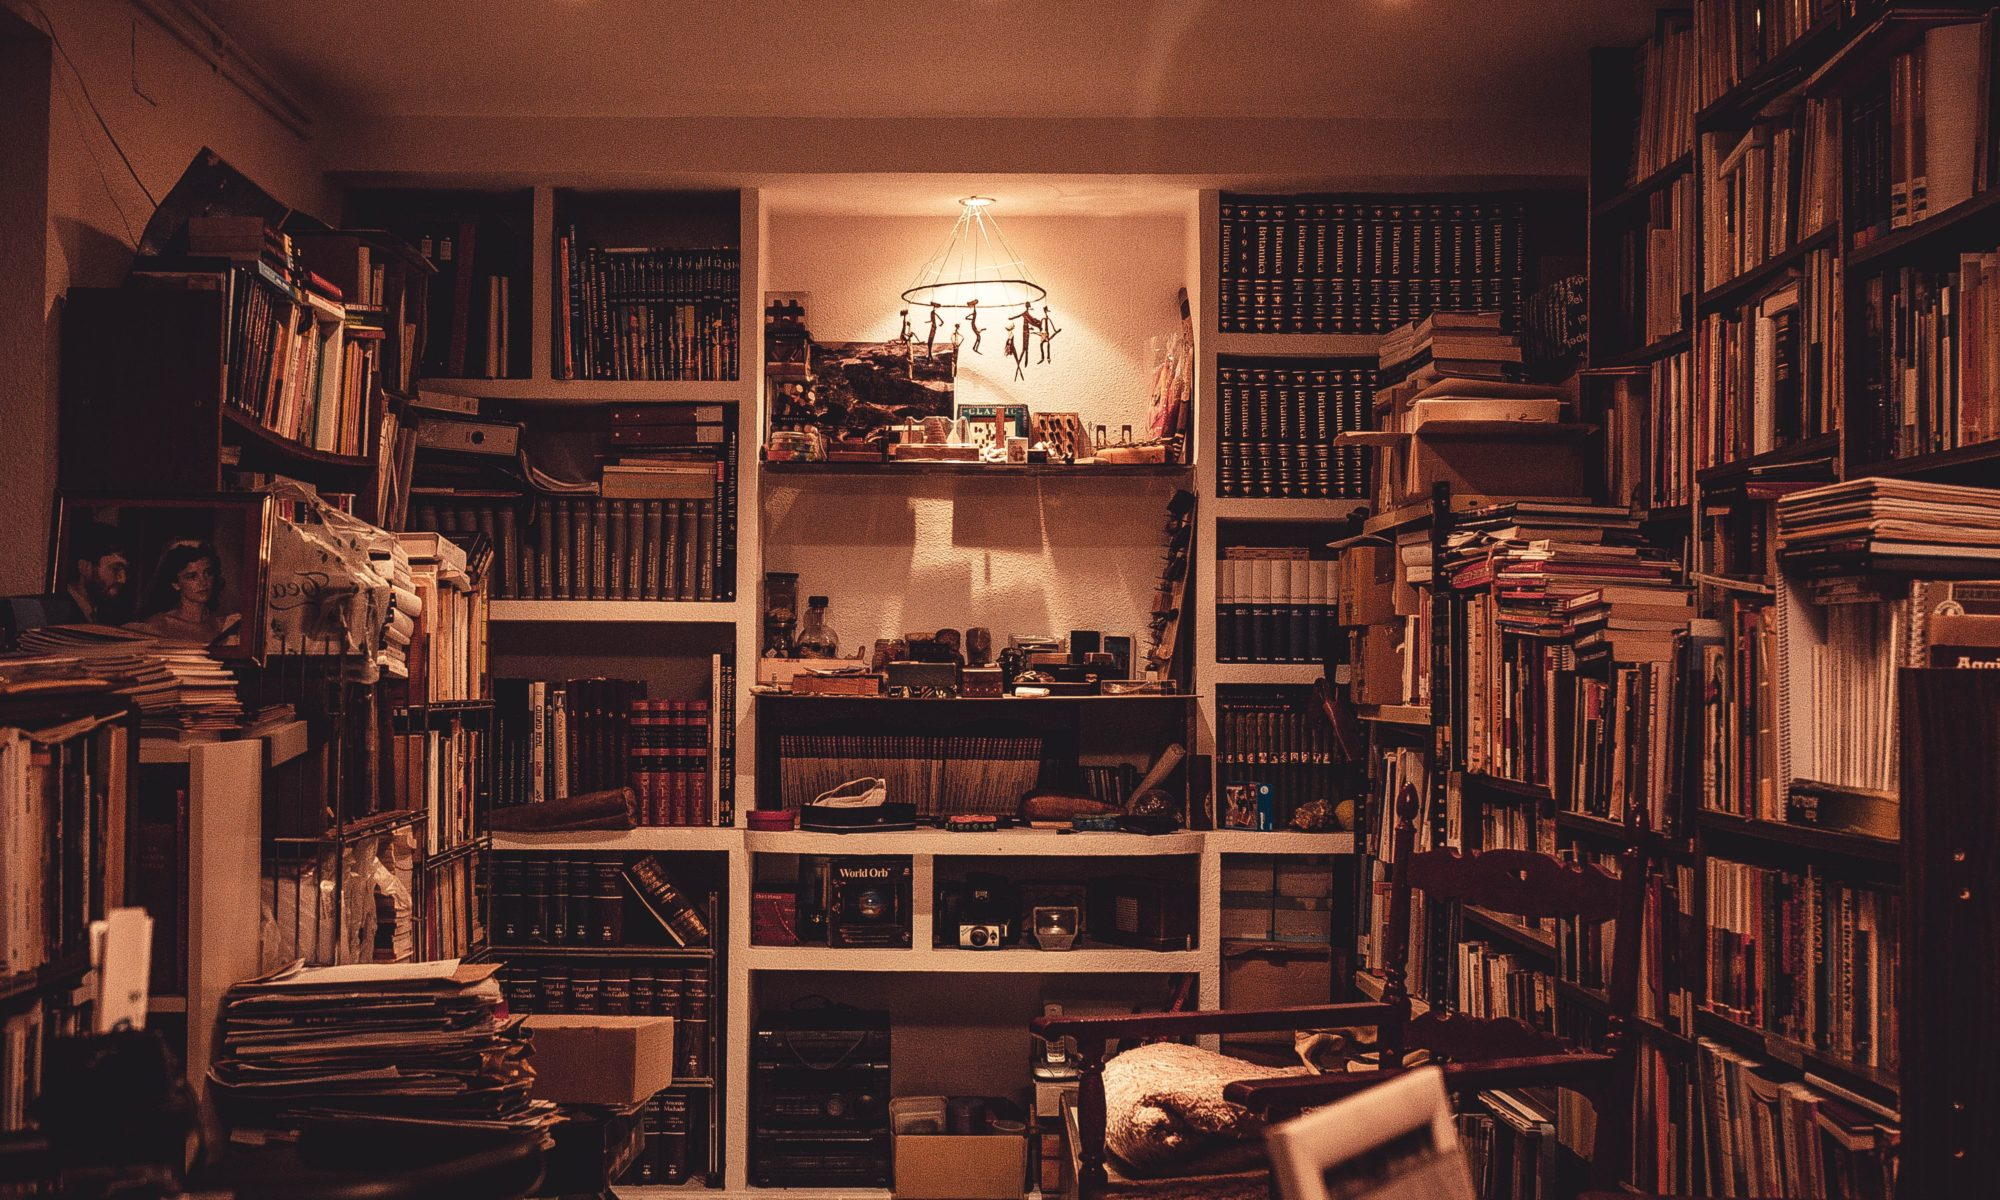 In my personal library, I have a collection of old books, as well as many I have read or wish to read. I have a special shelf dedicated to my own books, and the books for which I've done illustrations. This includes The Gem of Meruna, published under my maiden name Elexis Mullins, and Annabelle.